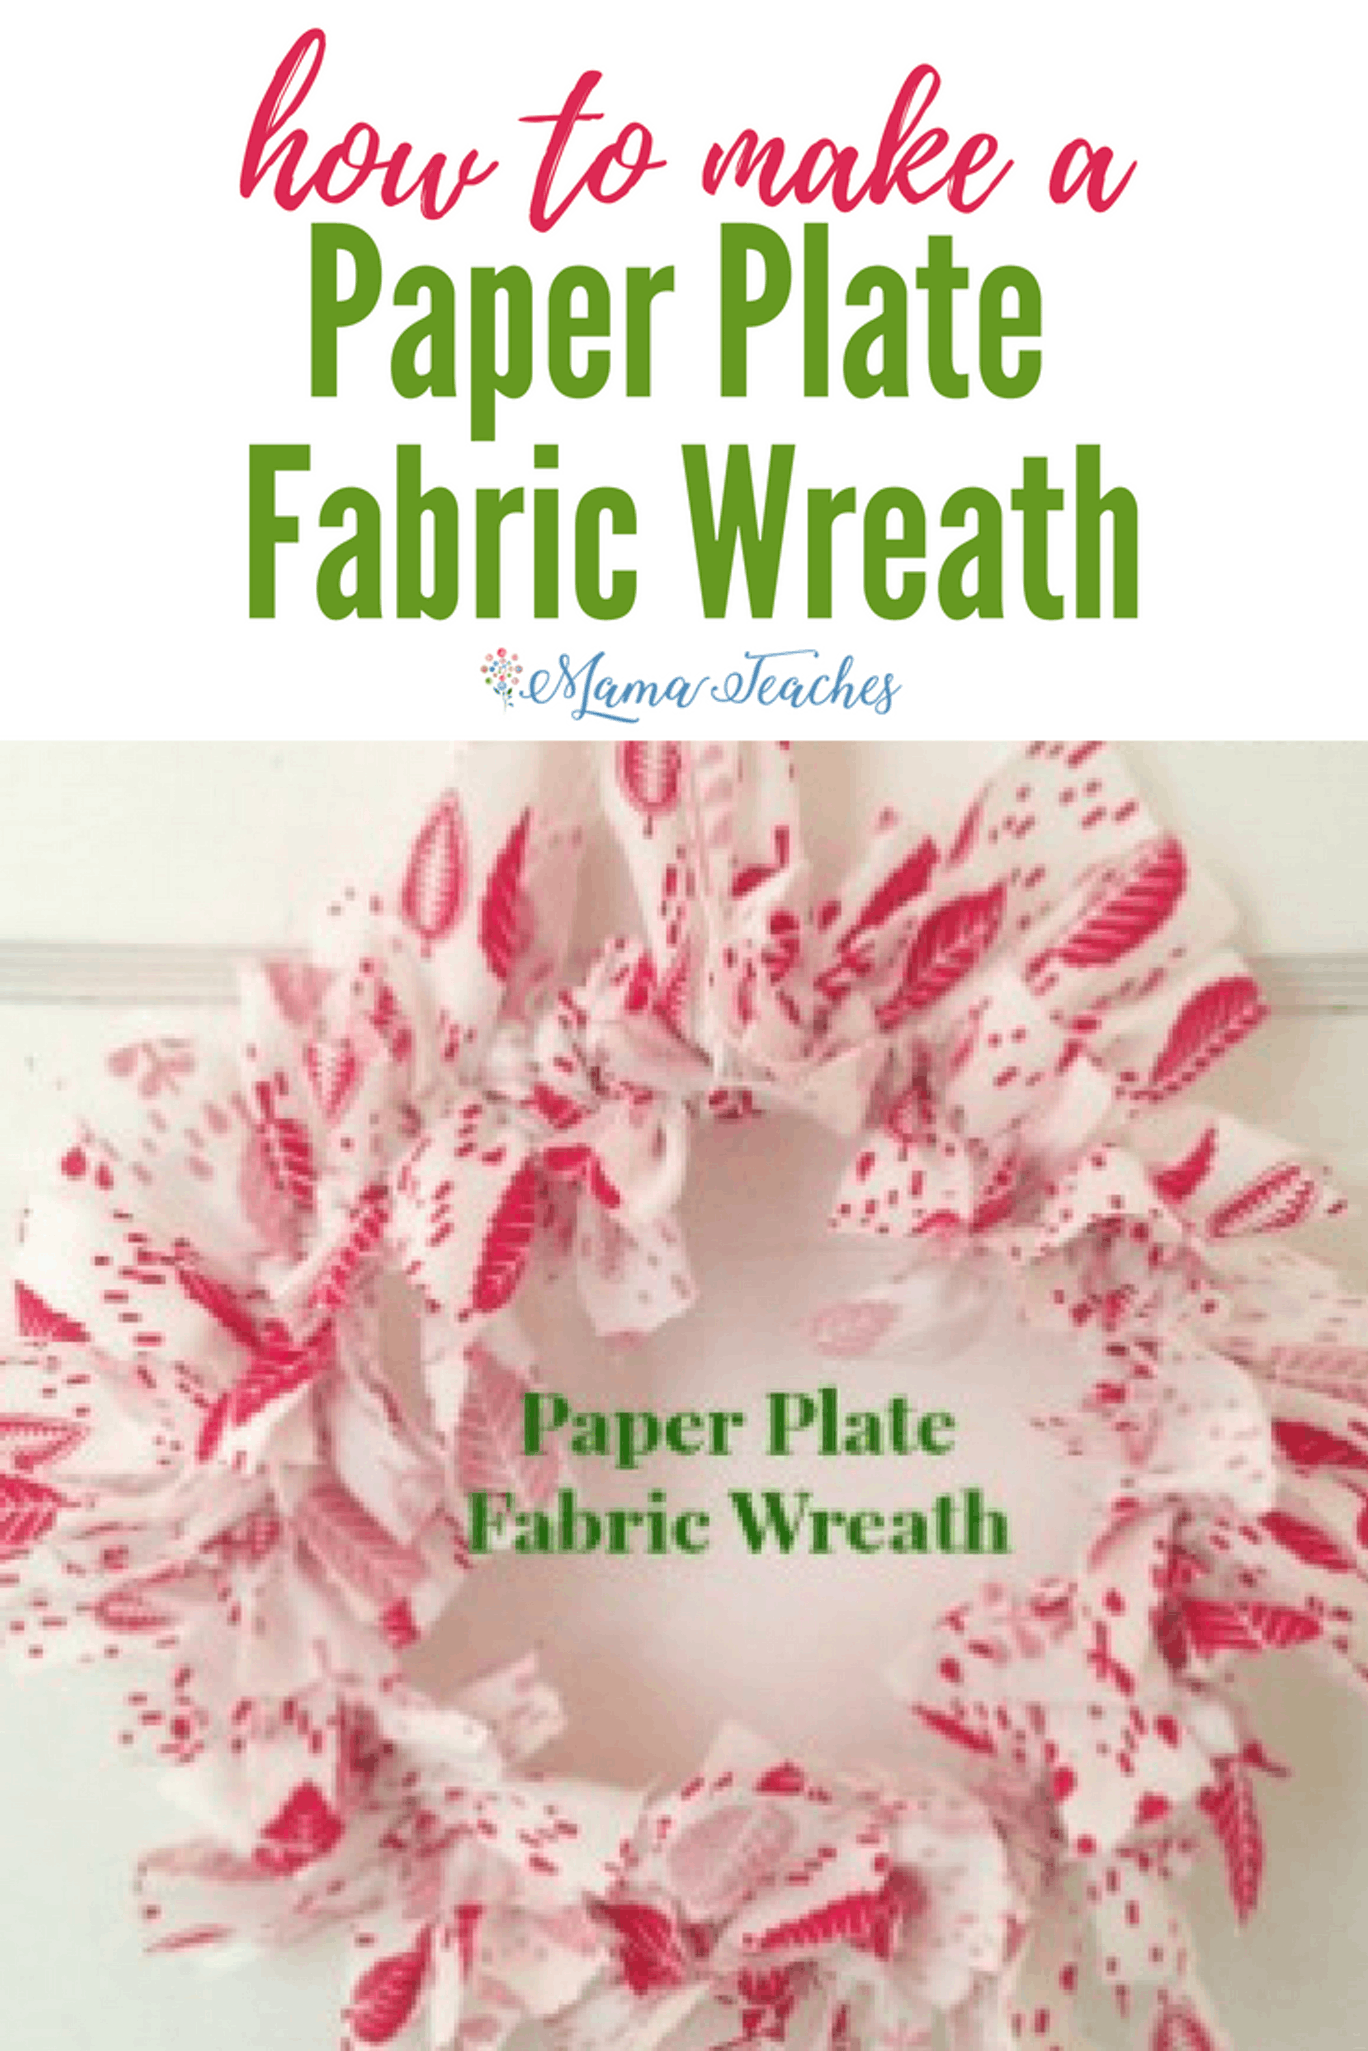 Paper Plate Fabric Wreath Christmas Craft for Kids